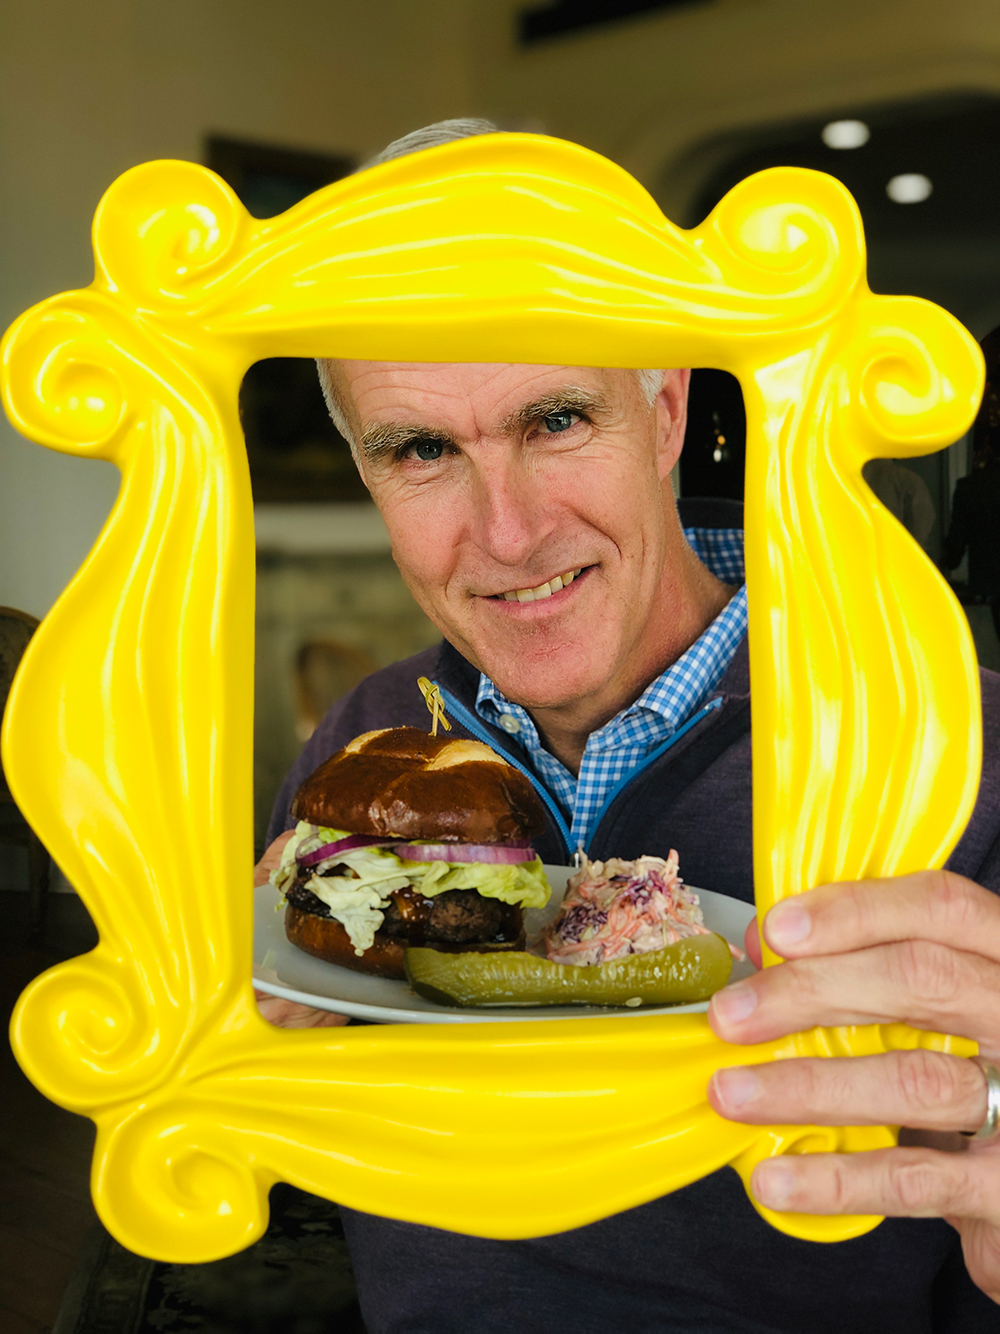 Todd Martin from the International Tennis Hall of Fame posing with our  Friends  picture frame and burger.